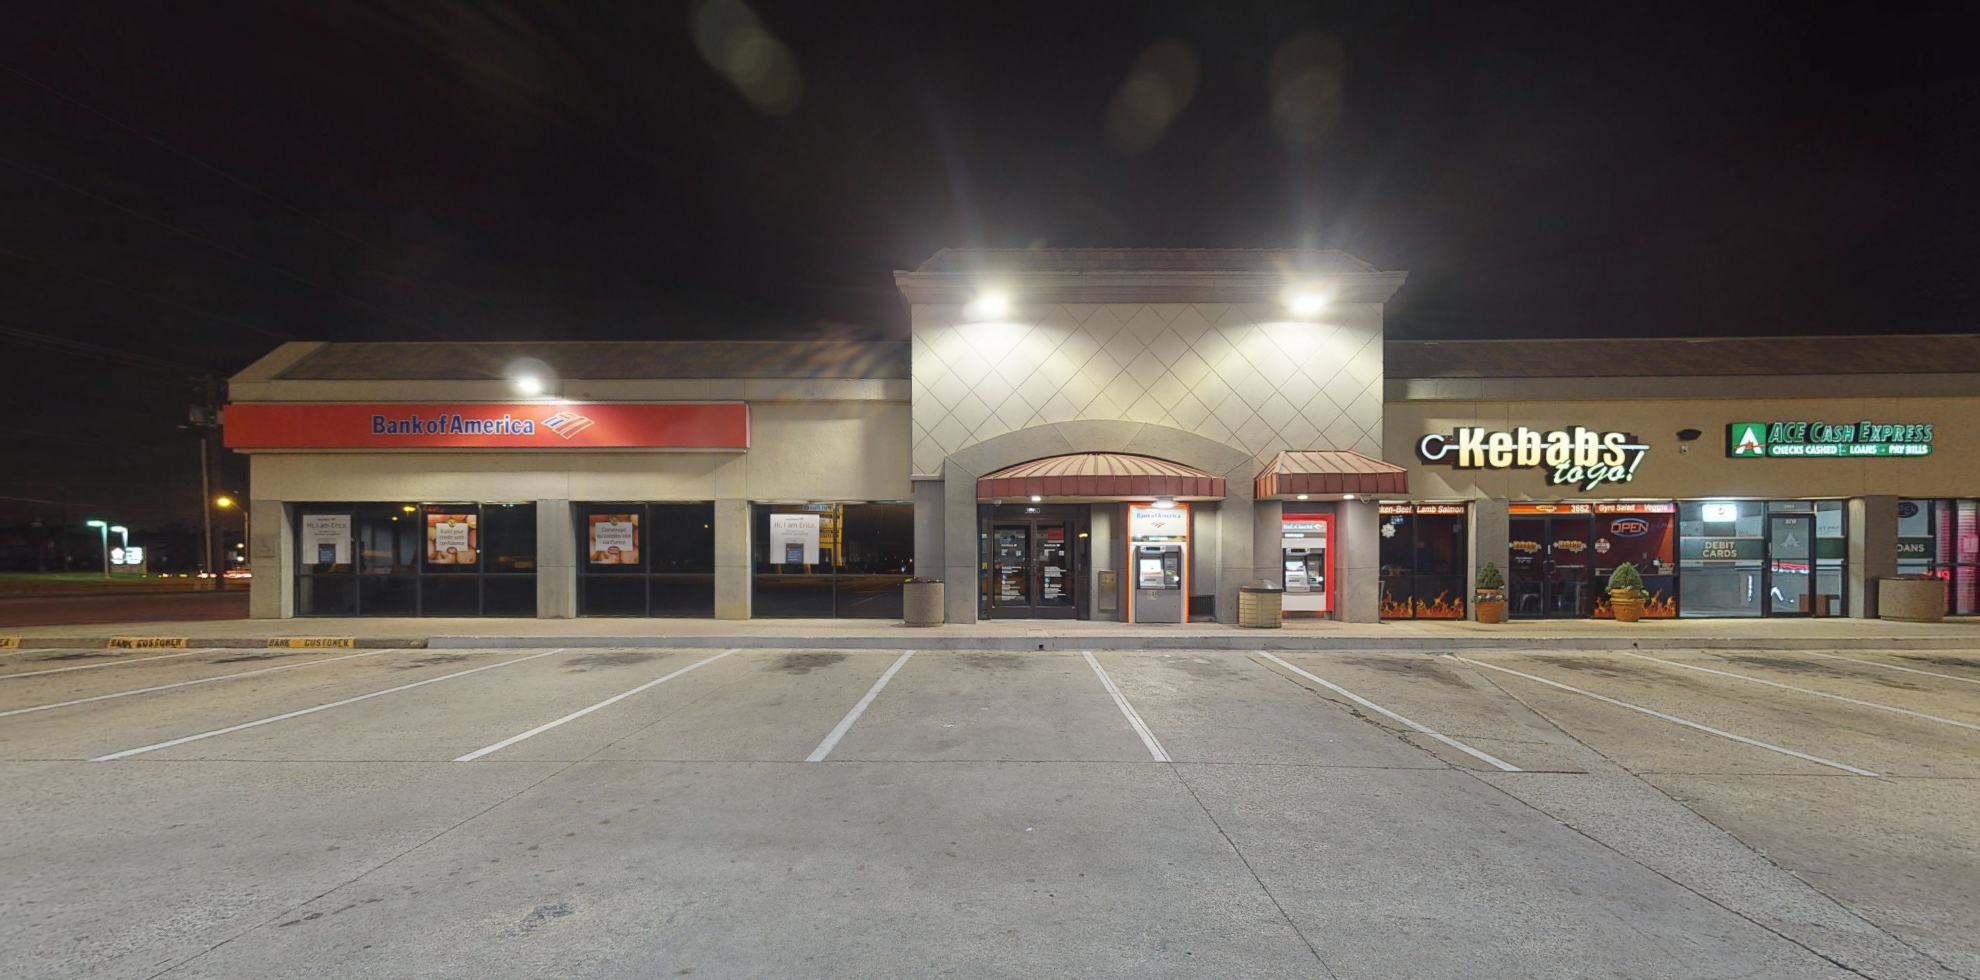 Bank of America financial center with drive-thru ATM | 3660 N Belt Line Rd, Irving, TX 75062